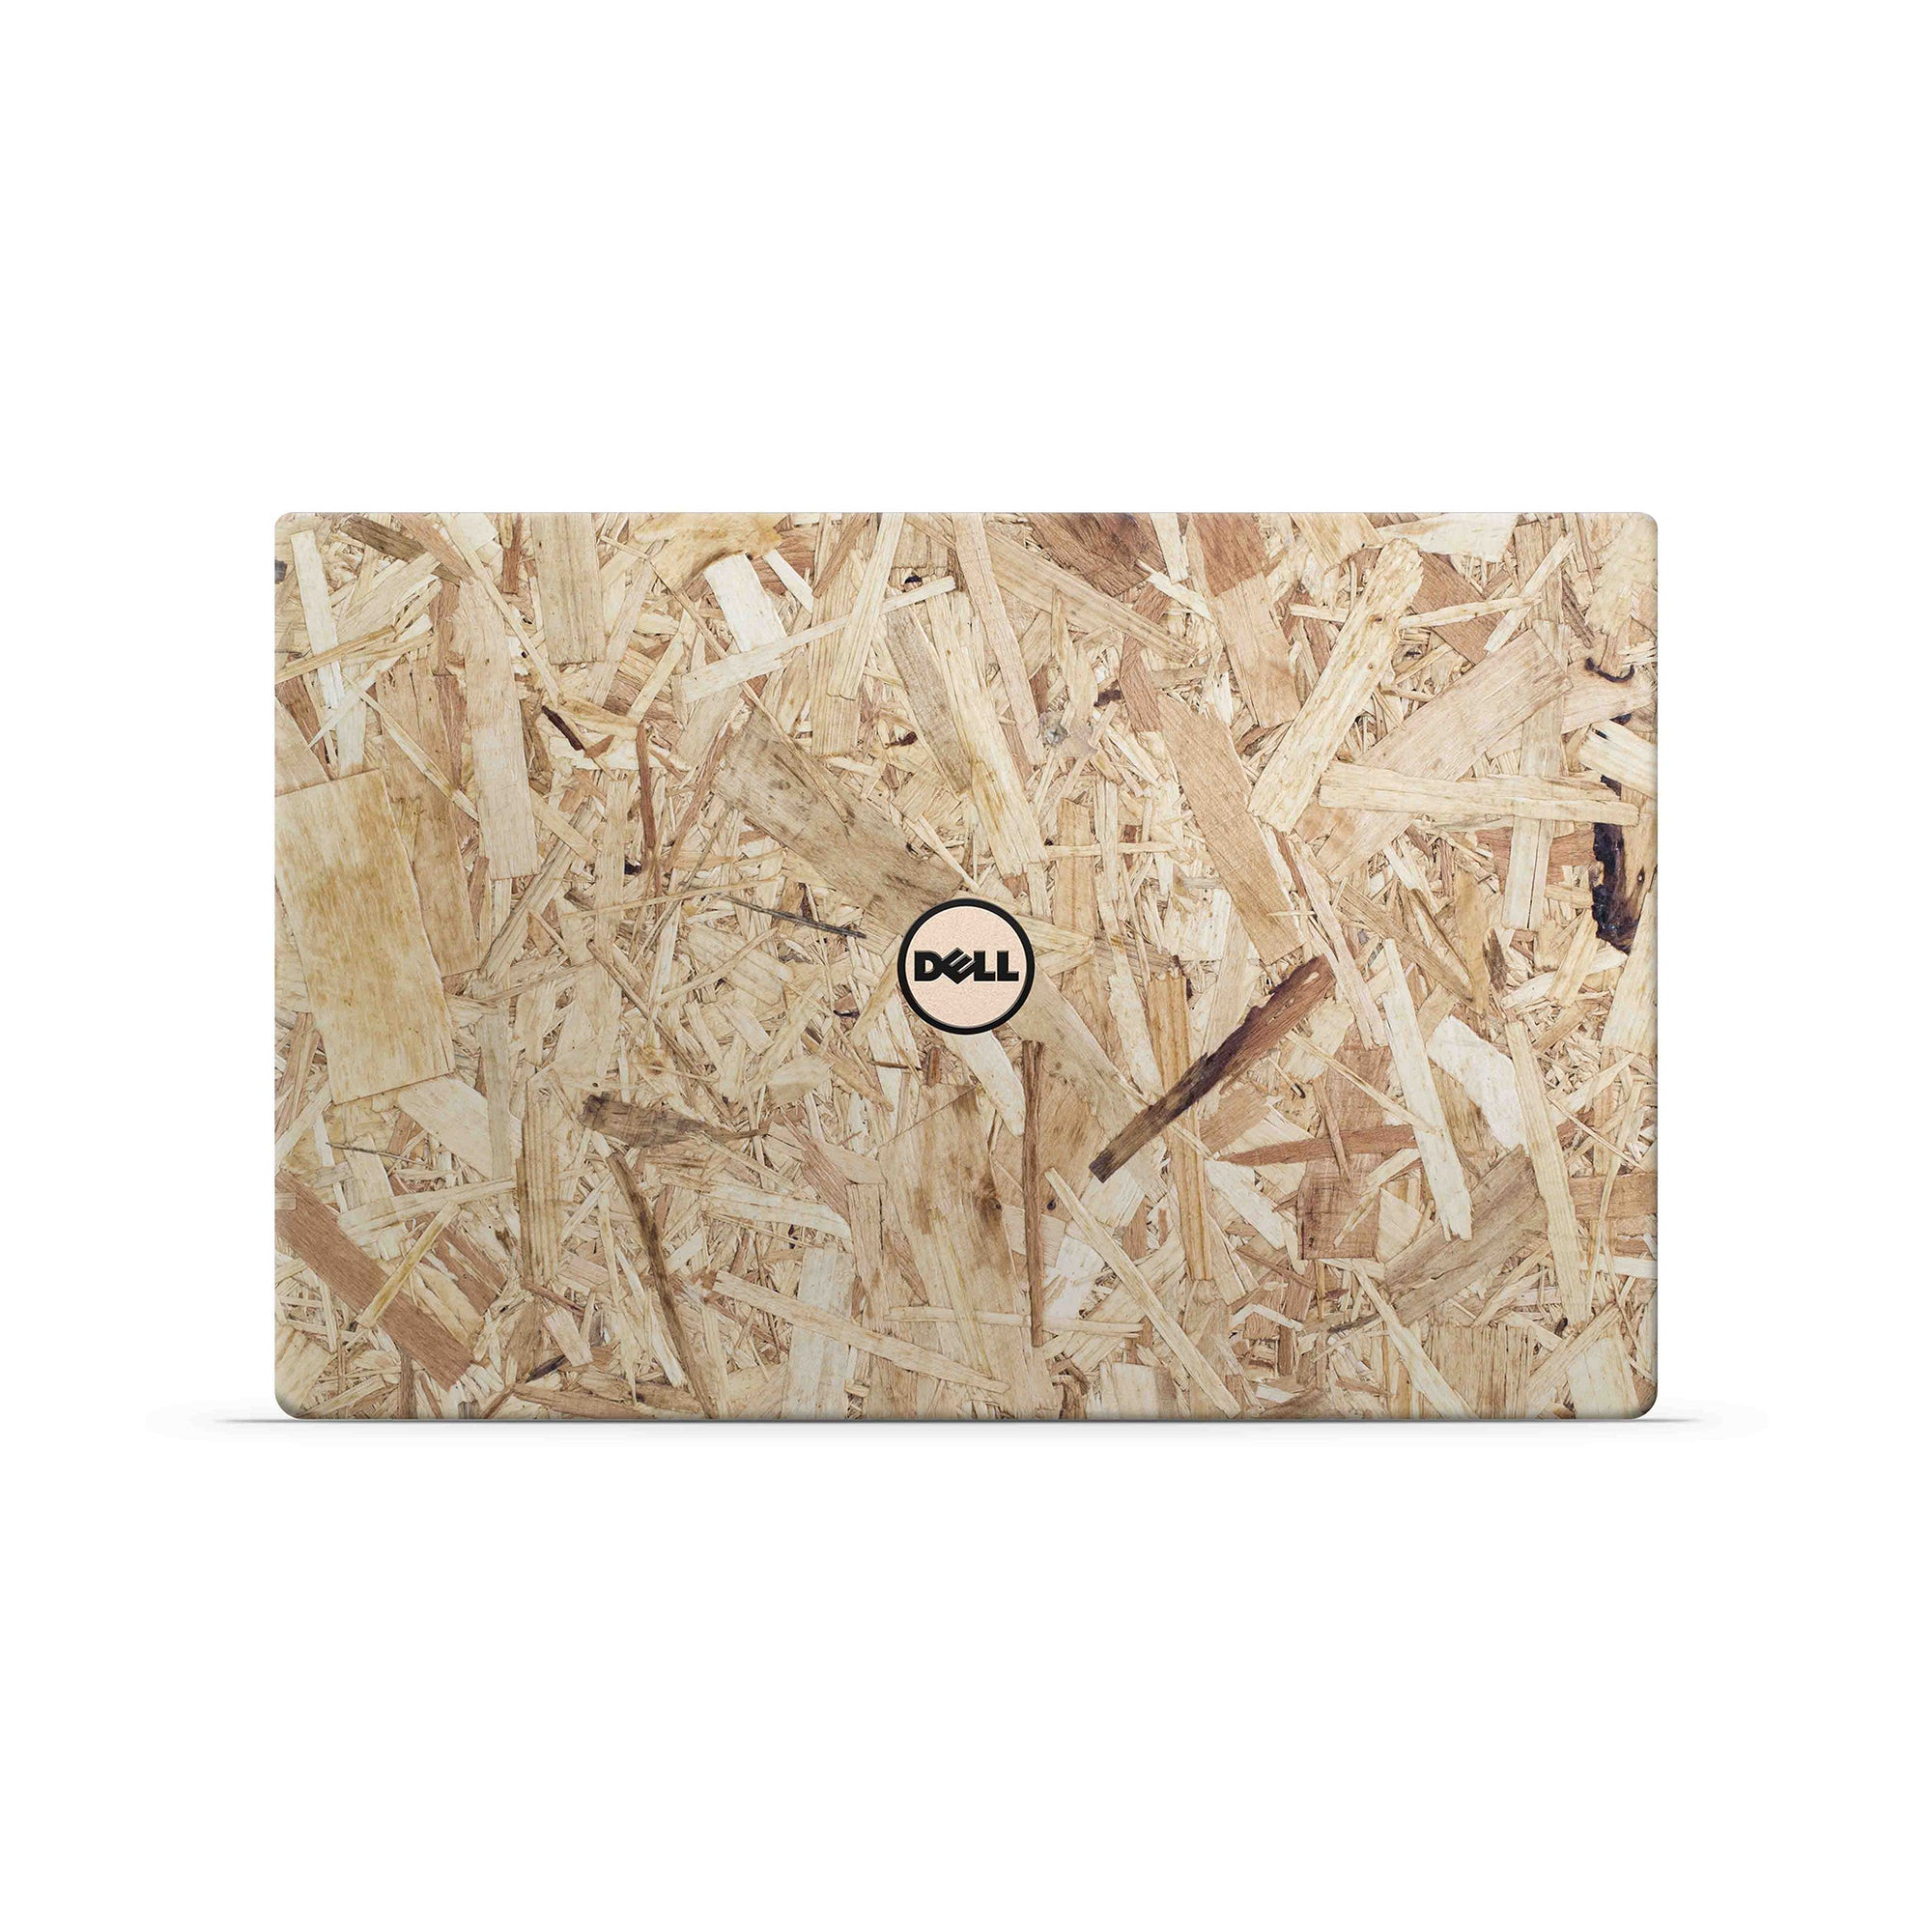 Plywood XPS 15 (7590) Skin